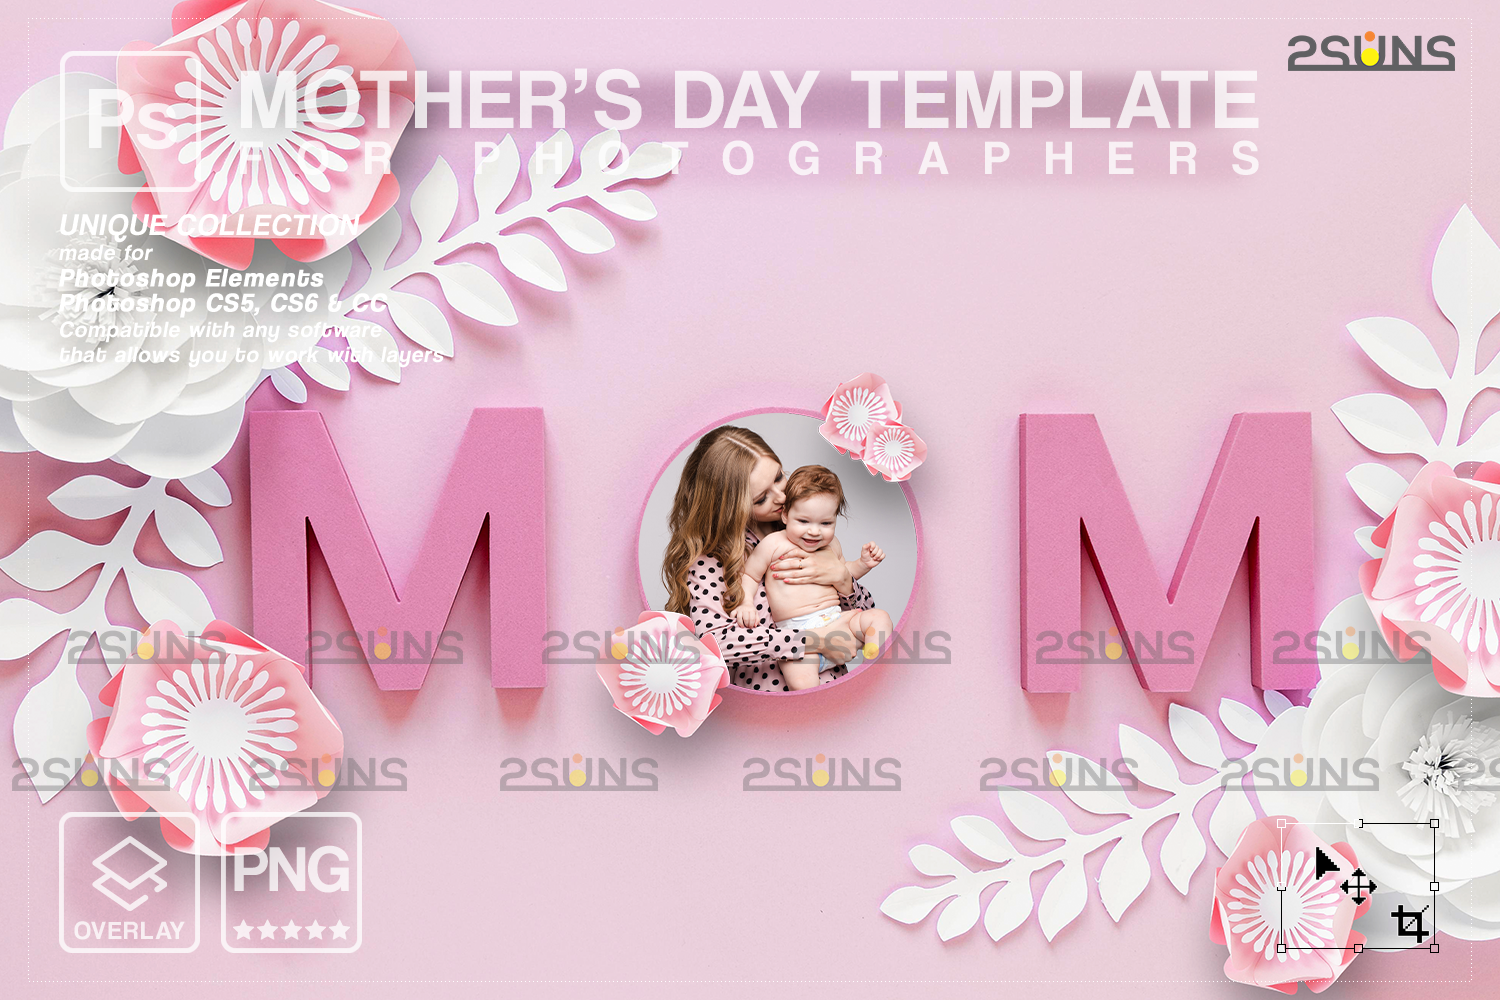 Mothers day cards template & Mothers day overlay: Backdrop flower watercolor frames, Mothers day - 001 101 -